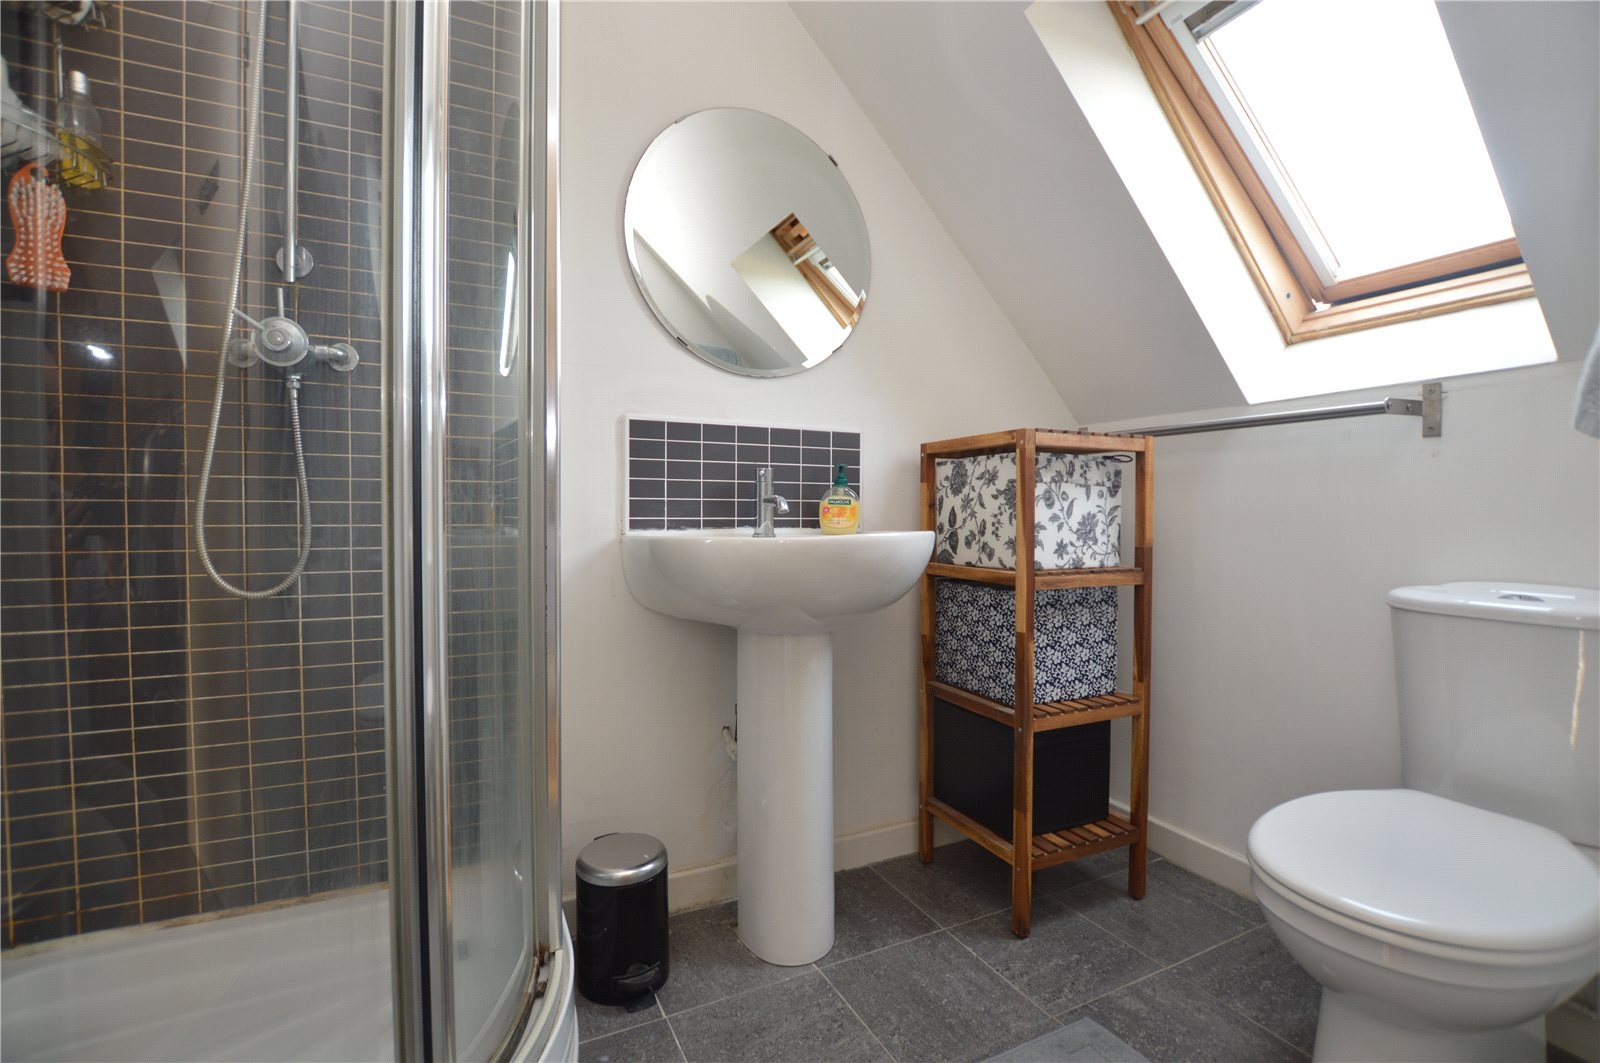 Property for sale in Pudsey, interior modern bathroom and walk in shower